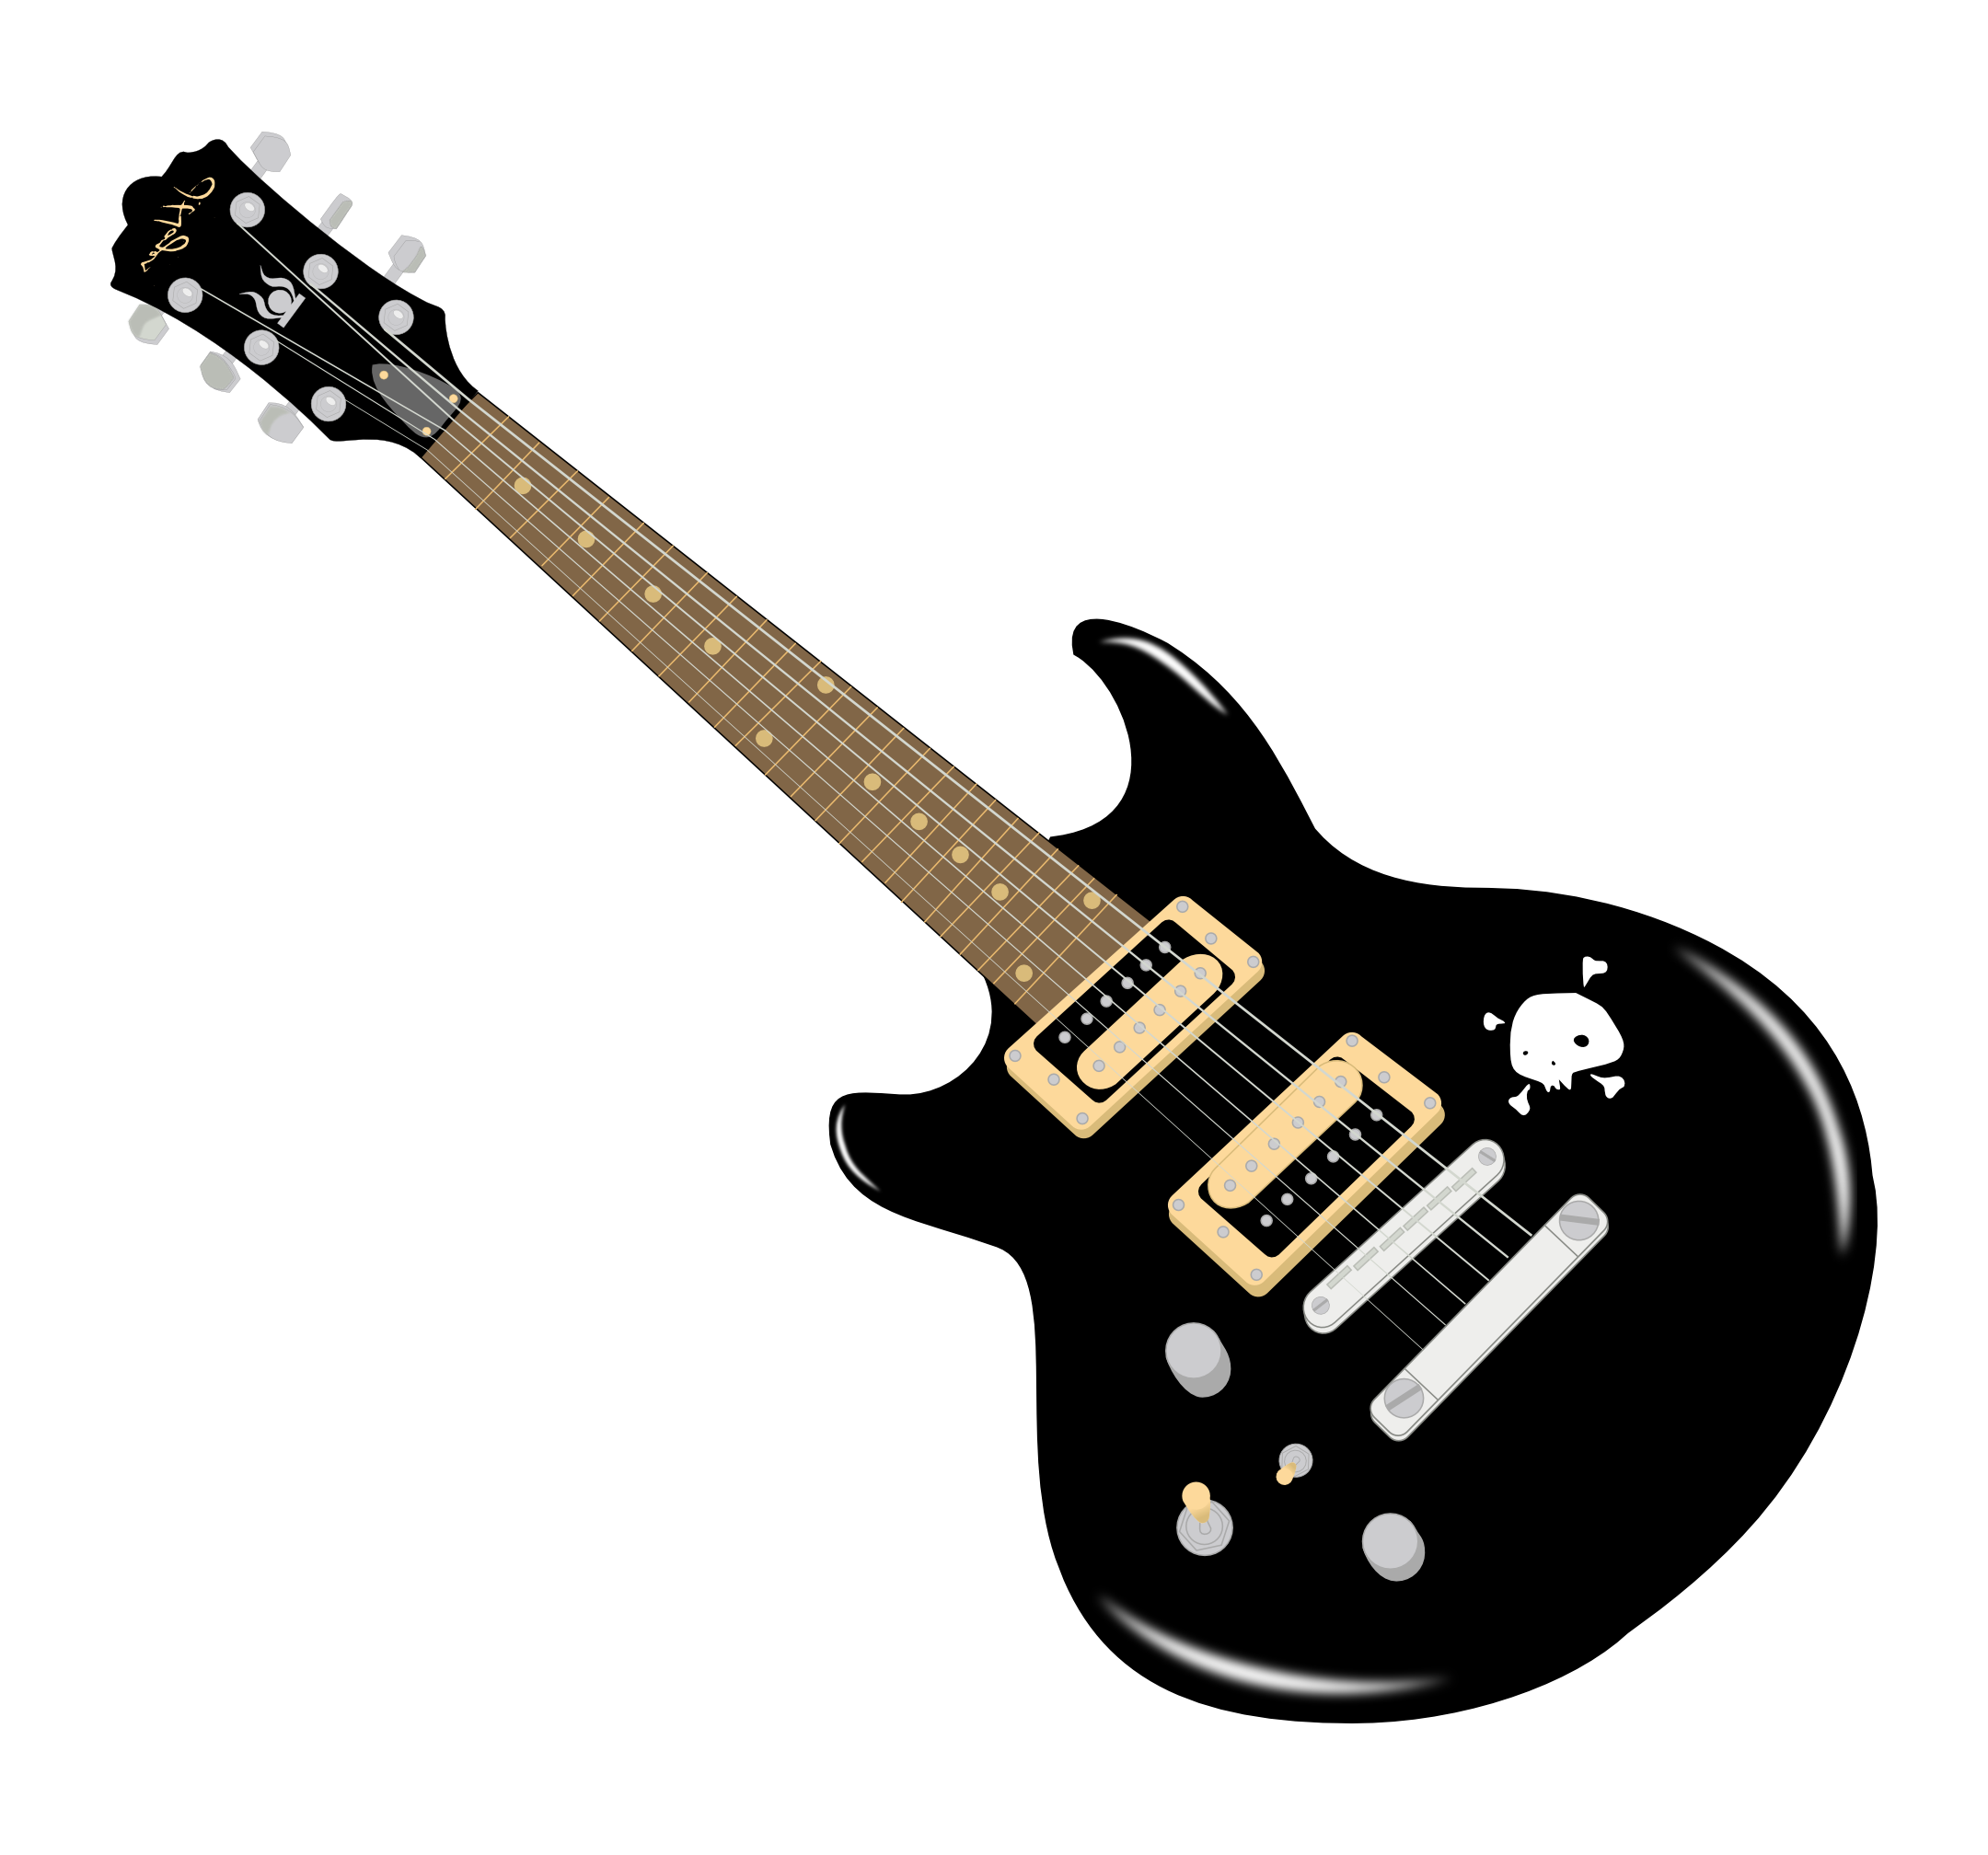 png freeuse stock Transparent png pictures free. Vector bands bass guitar